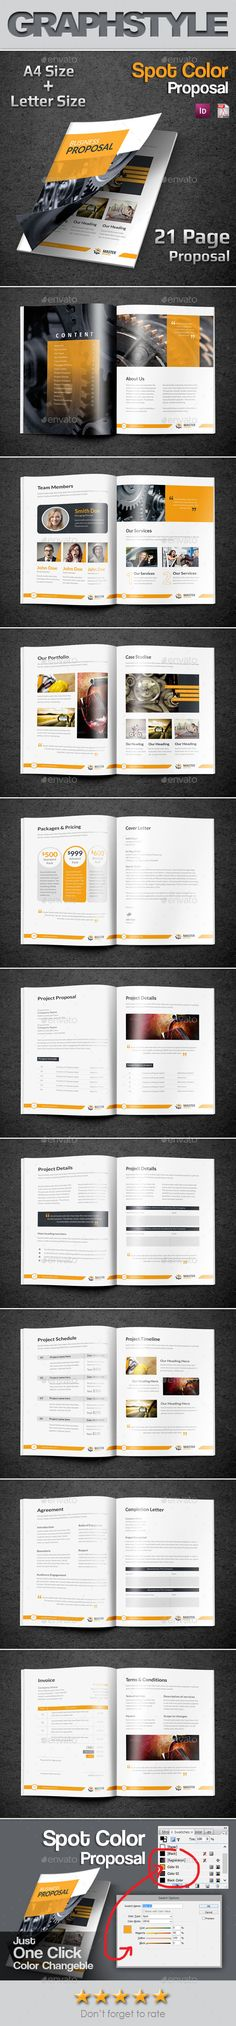 Proposal Template Proposal templates, Proposals and Business - download business proposal template